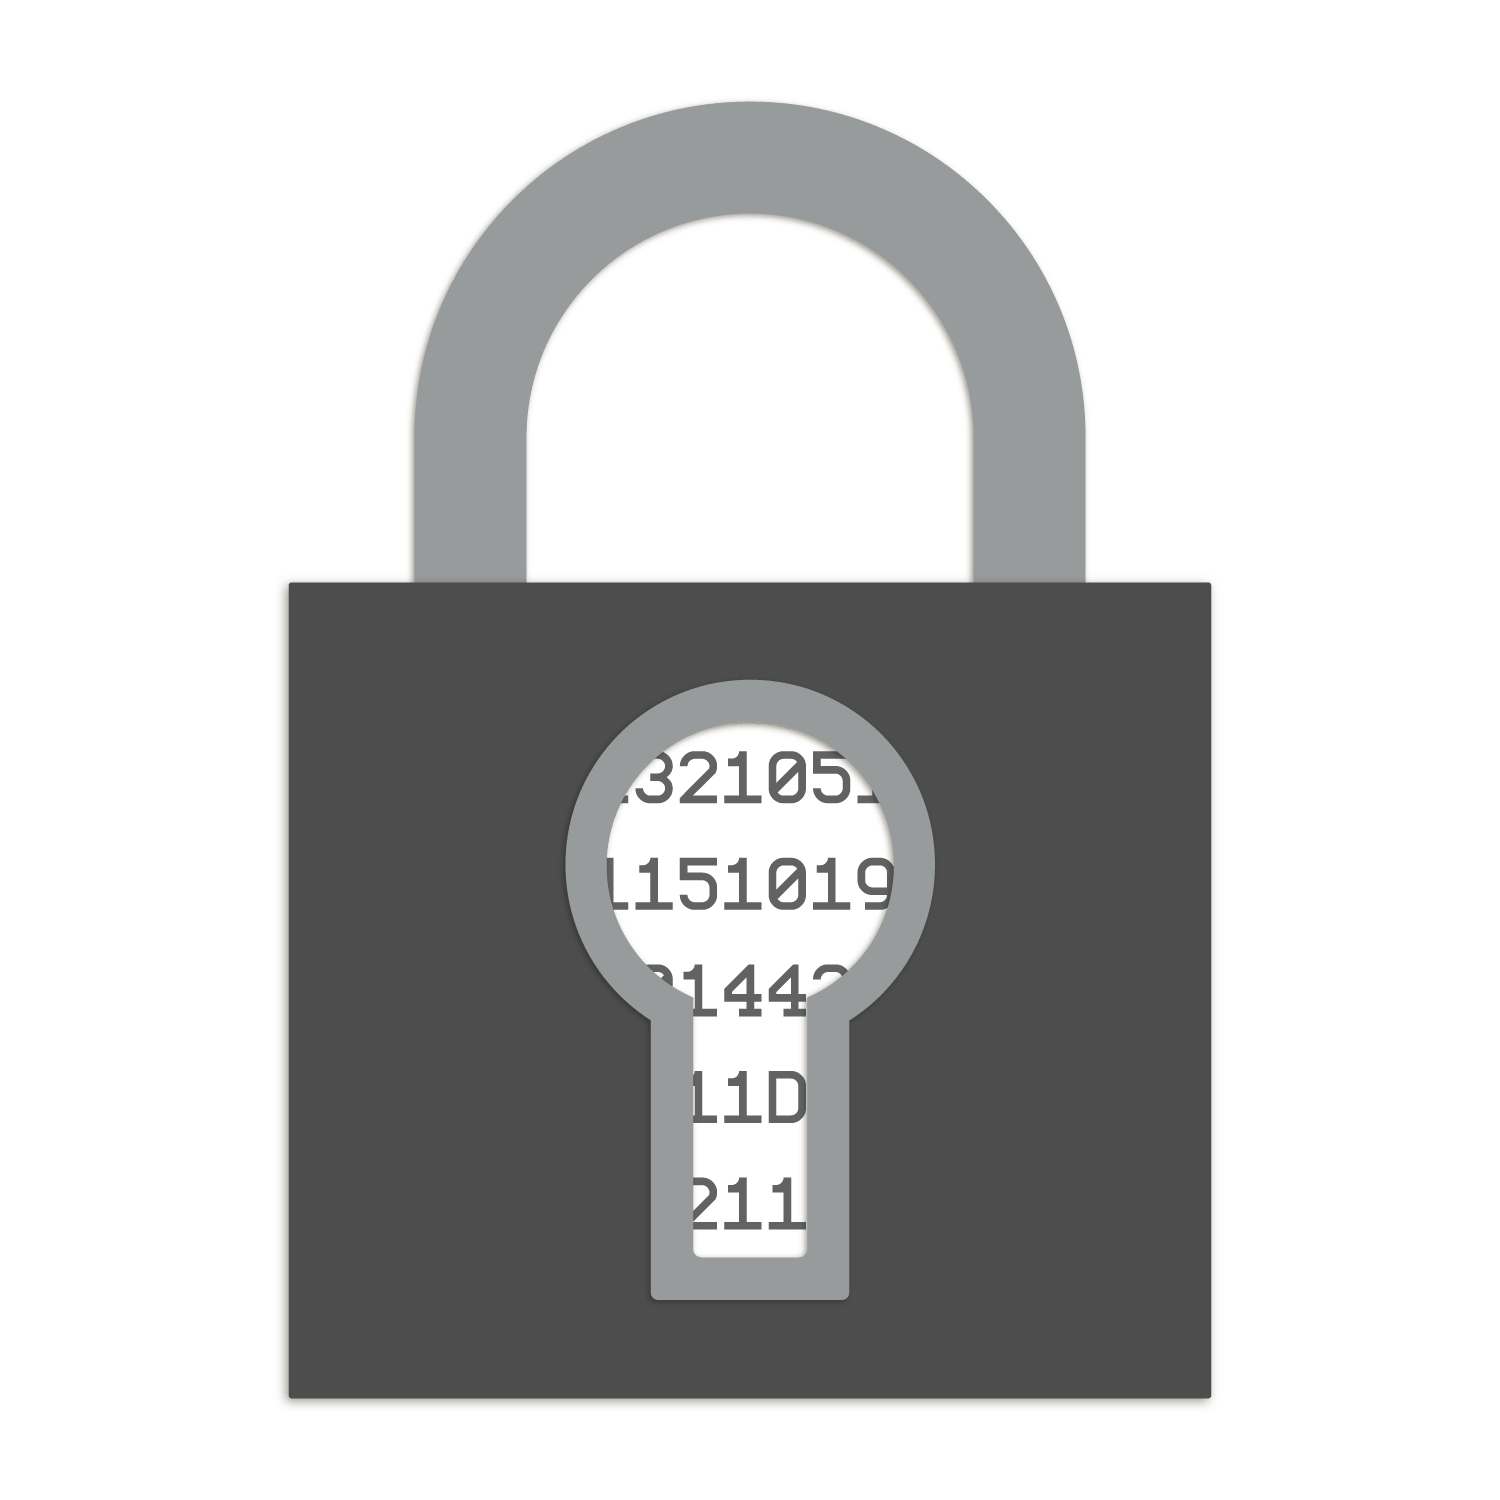 Encrypted lock